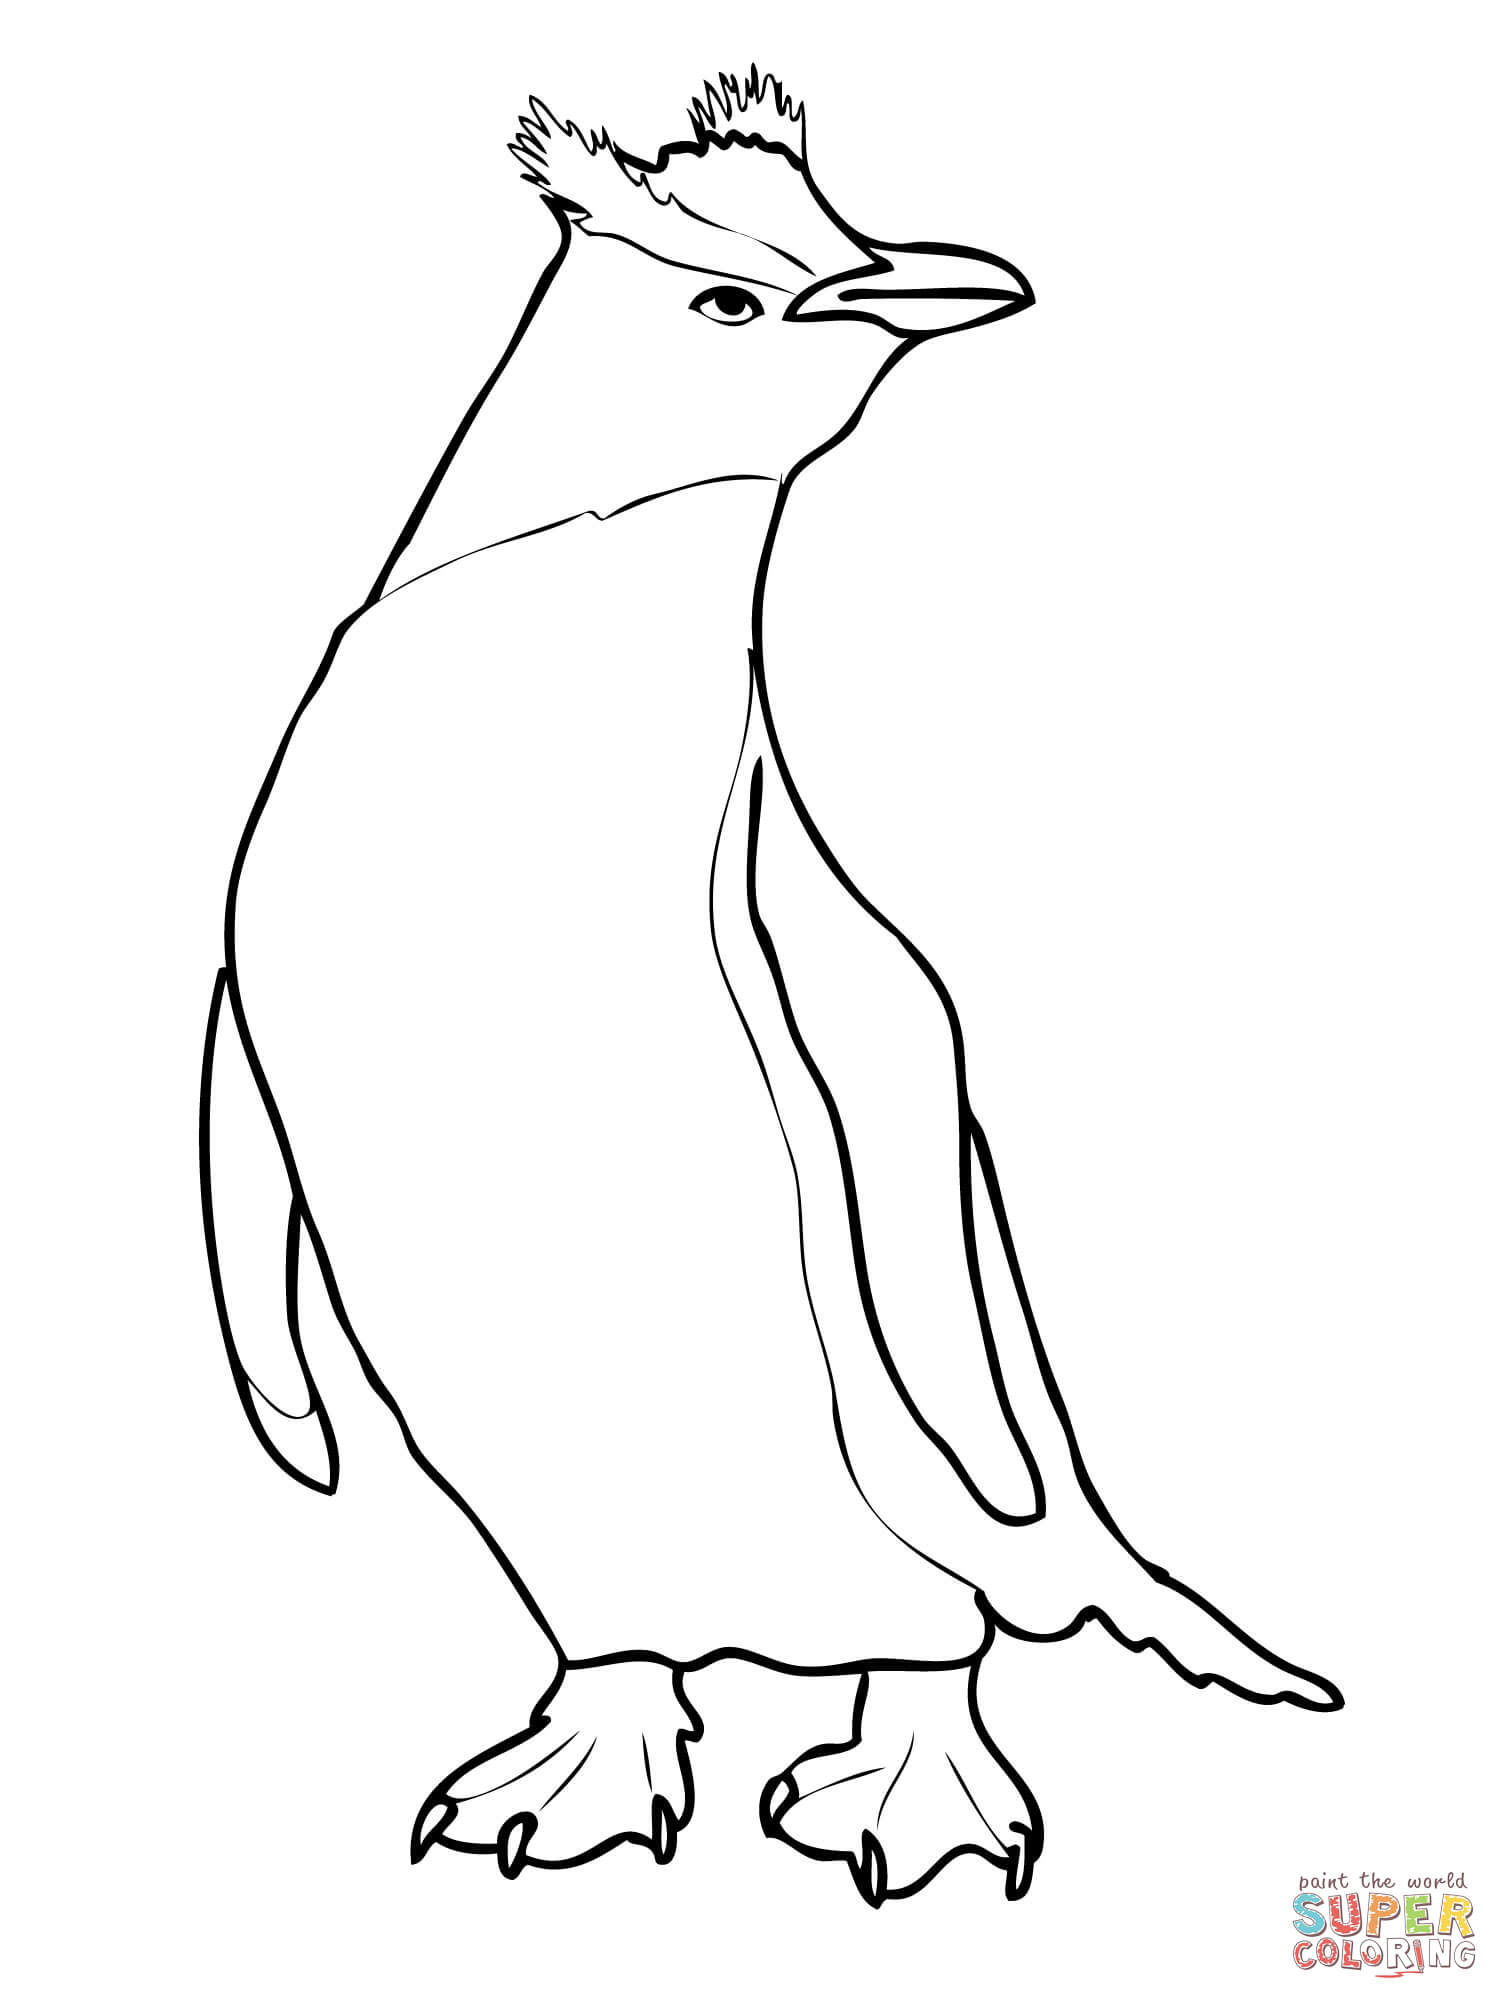 1500x2000 Erect Crested Penguin Coloring Page Free Printable Coloring Pages